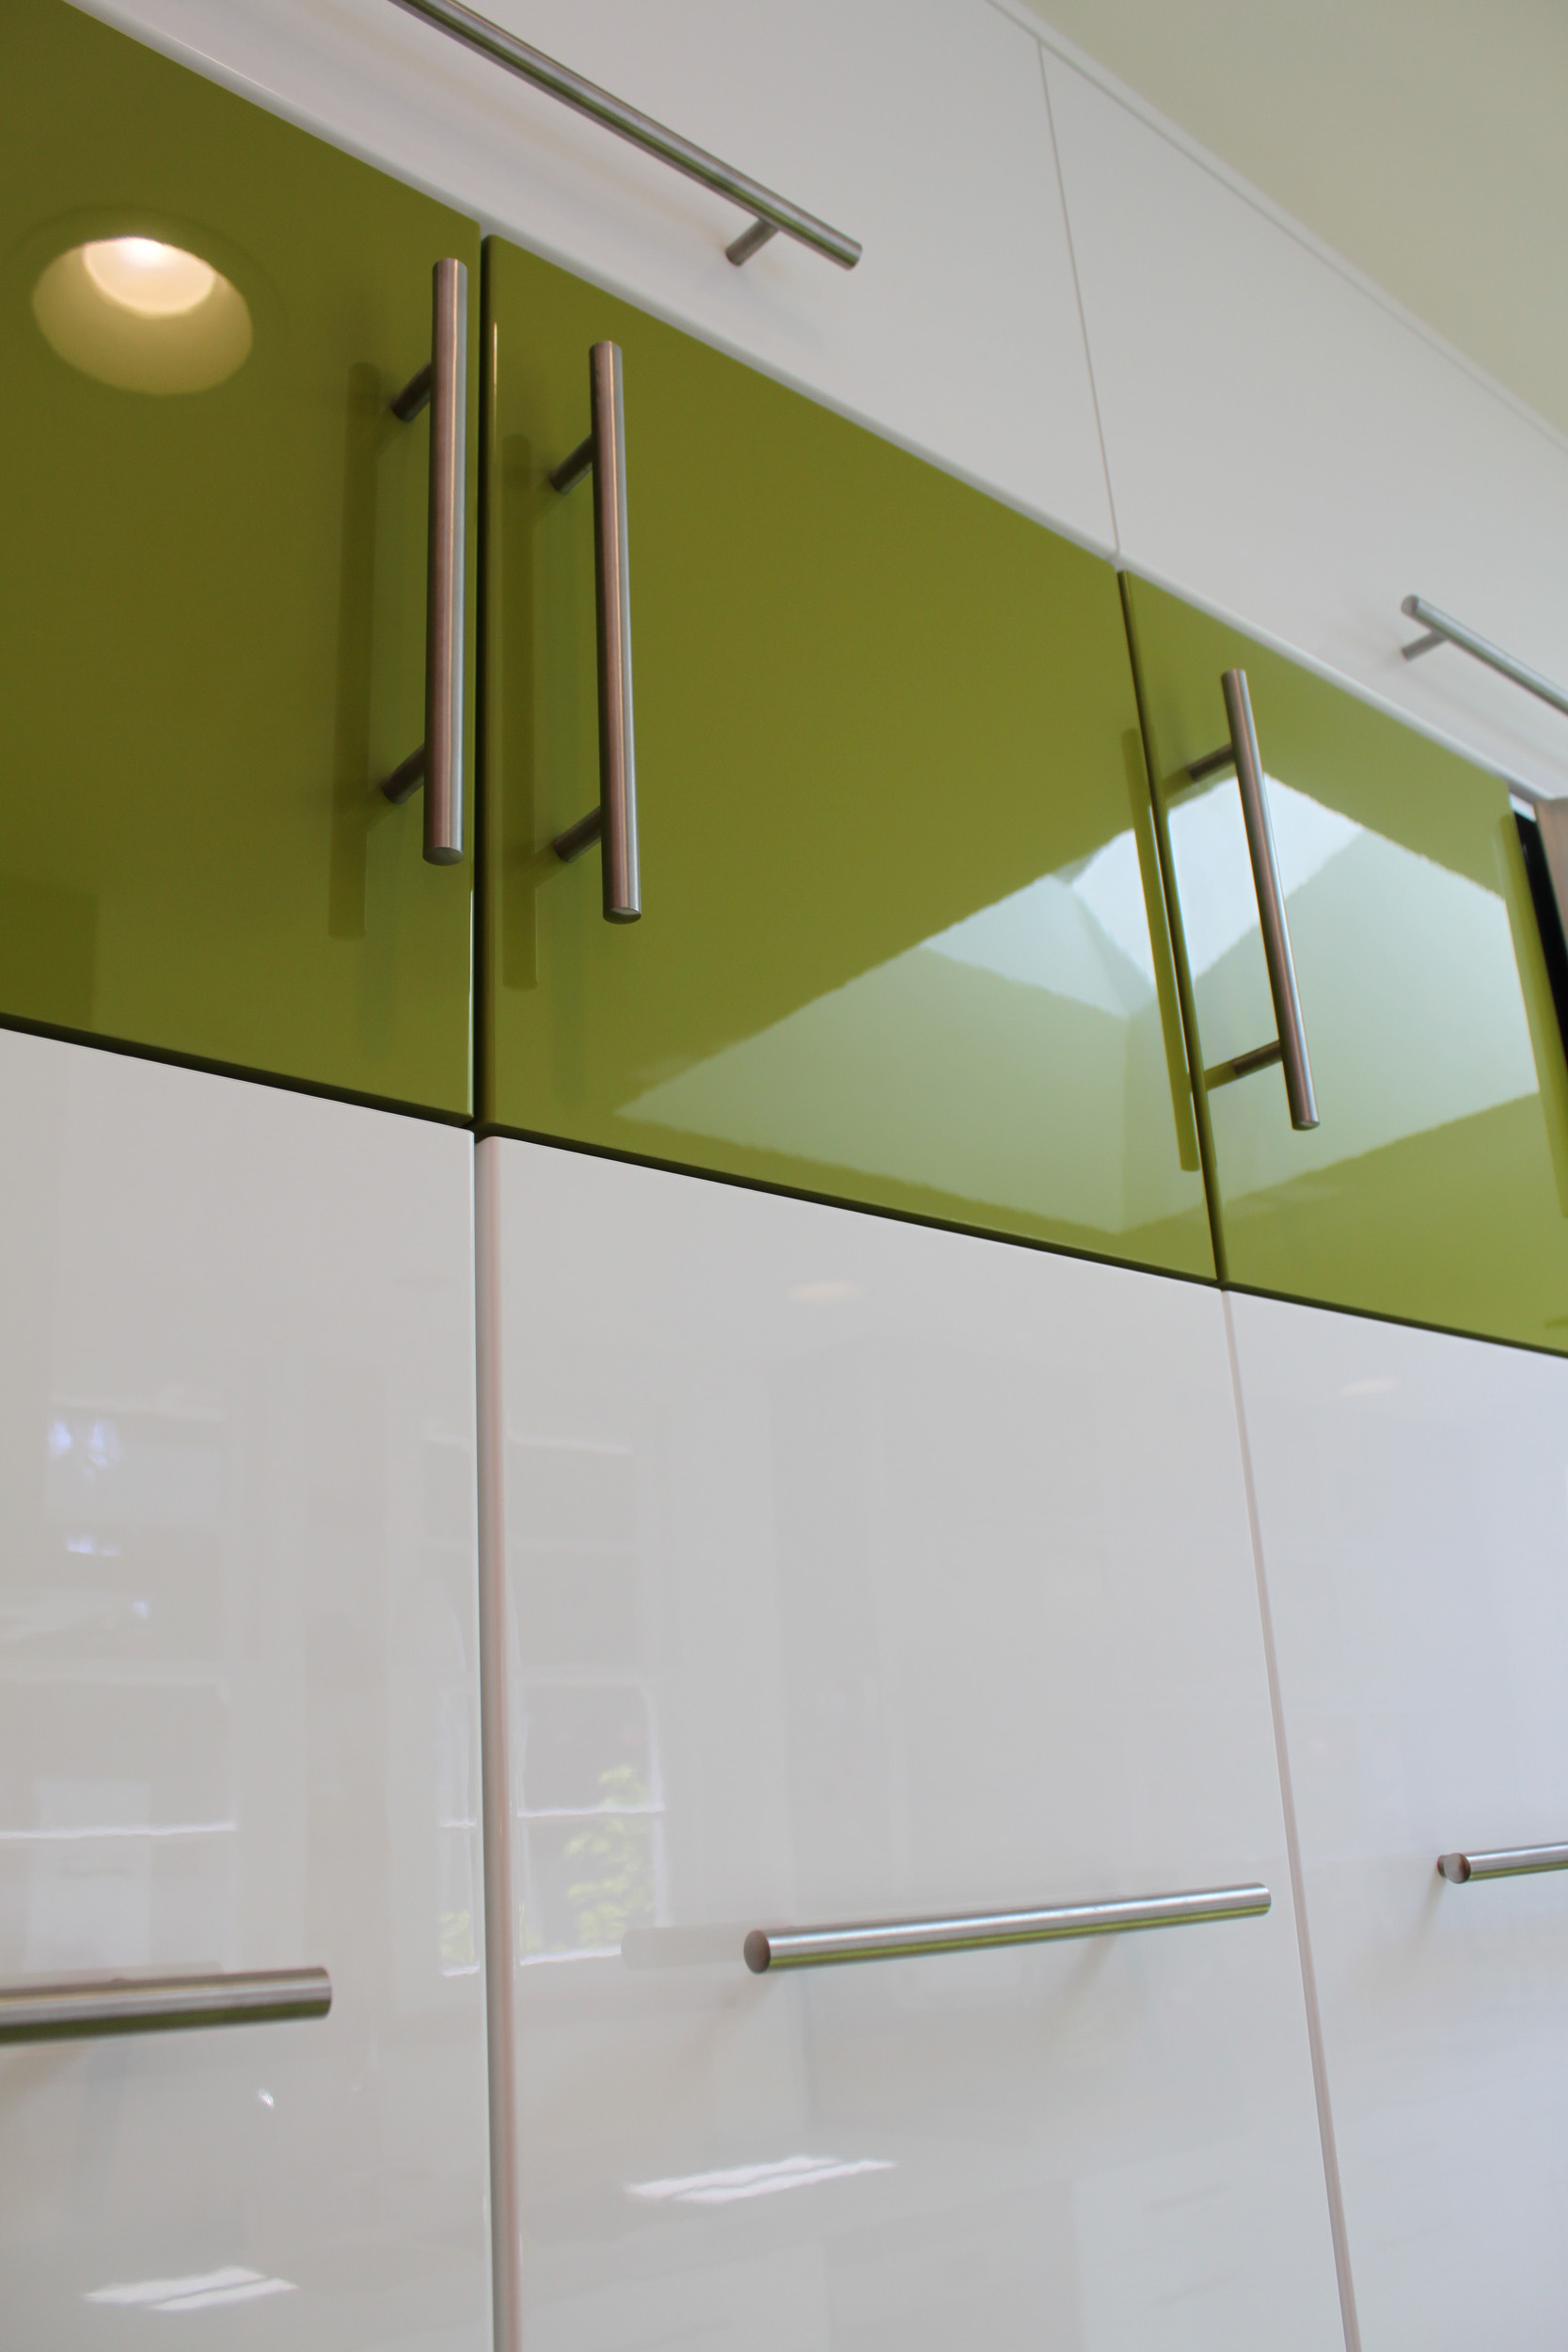 White full height kitchen cabinets with a playful and creative touch of green and a mixture of openings